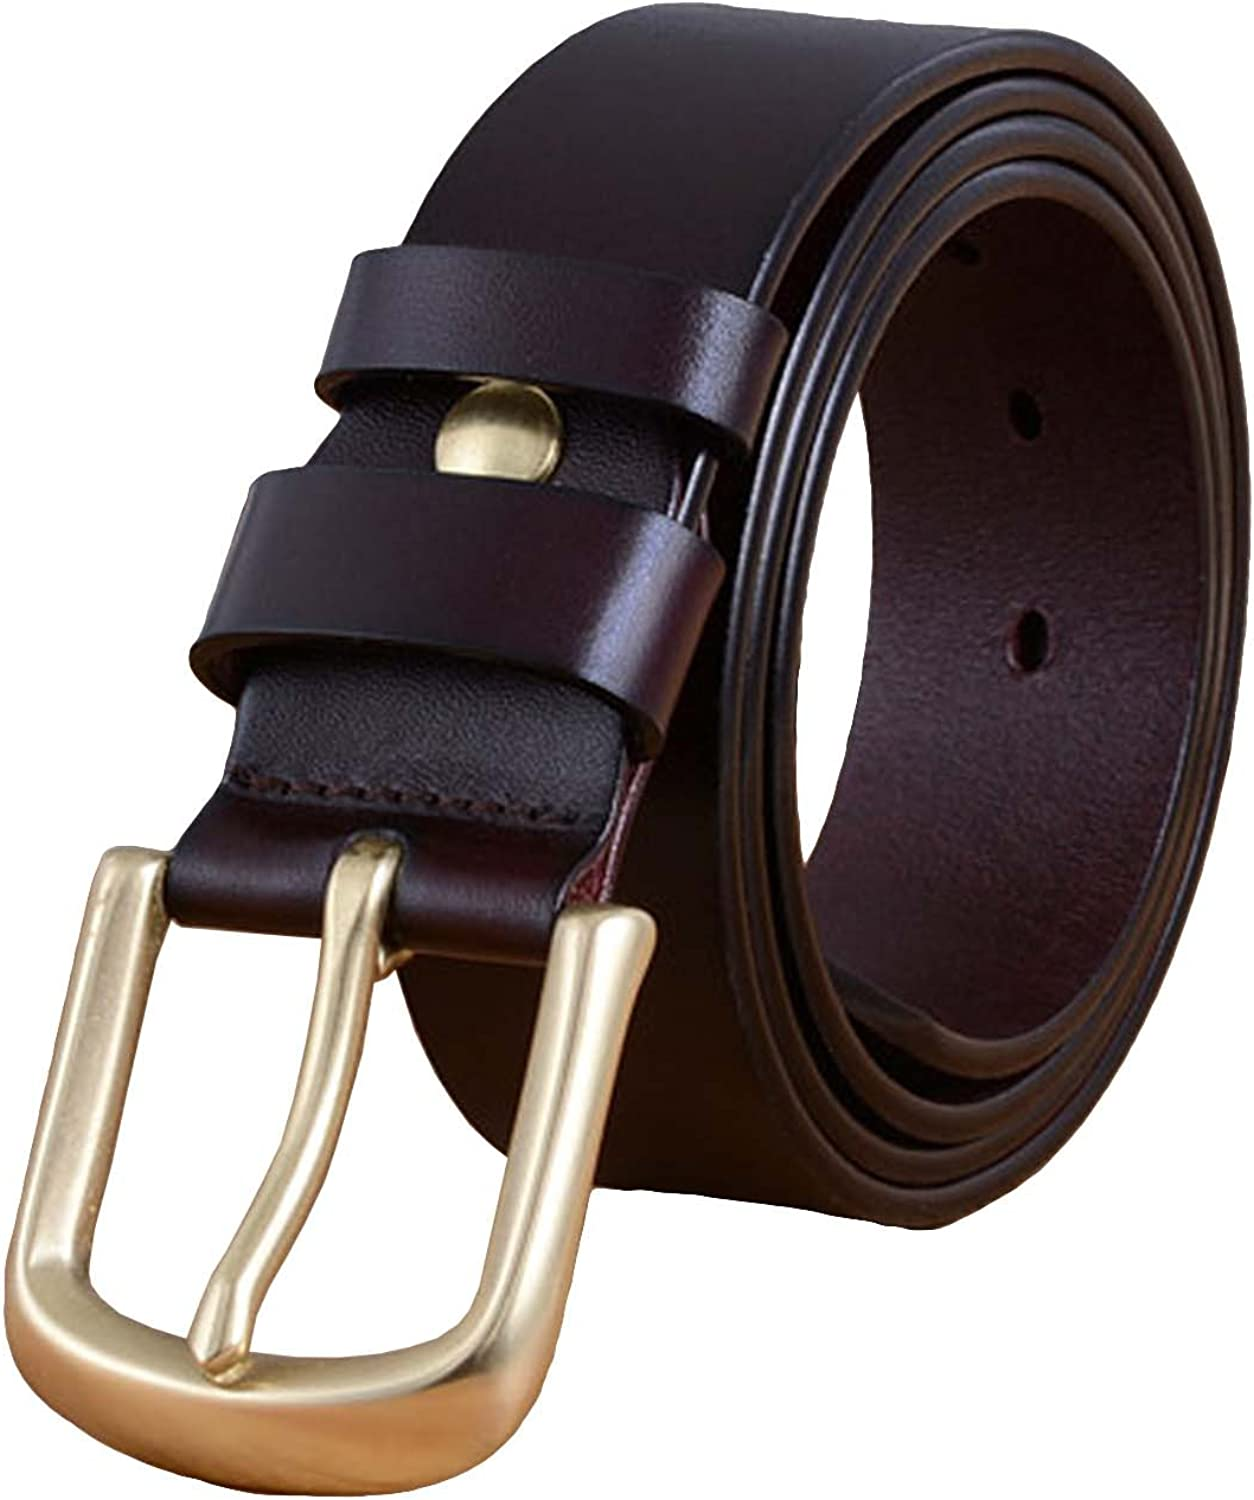 Nidicus Mens 38mm Brass Pin Buckle Retro Casual Reversible Leather Belt